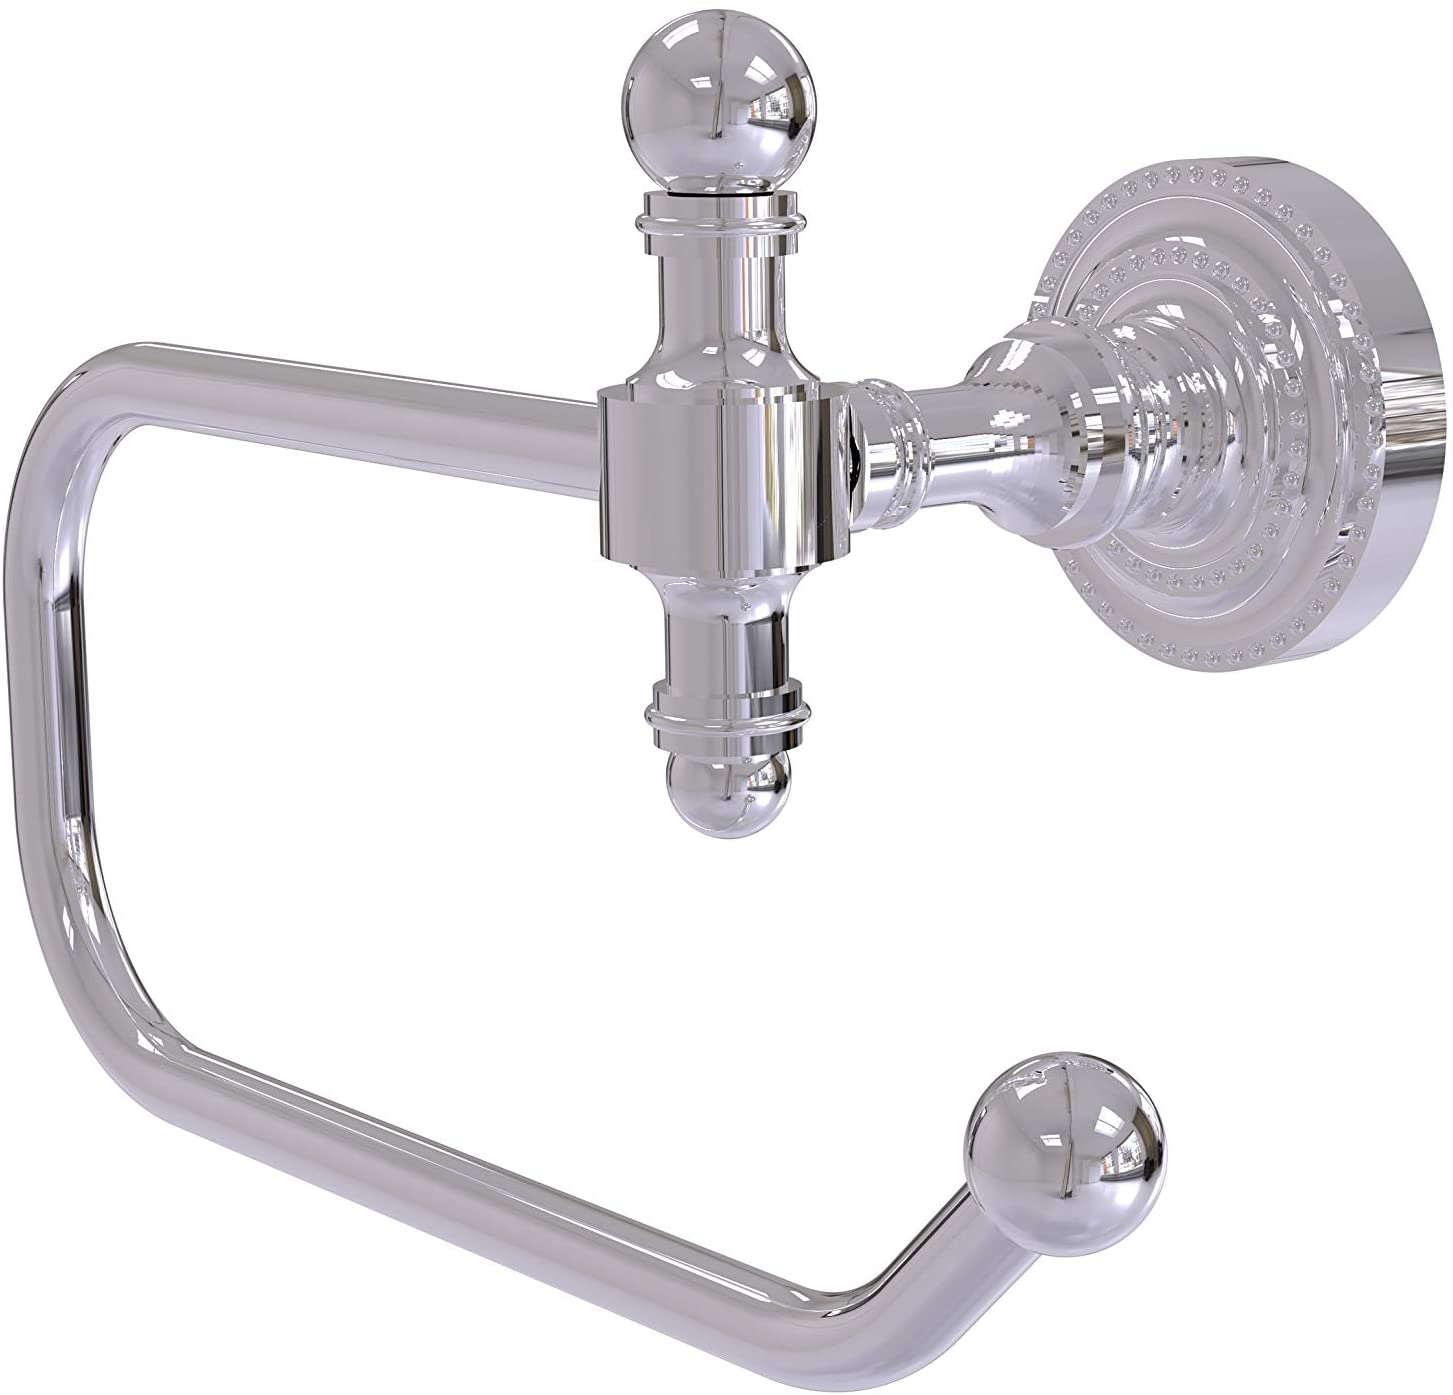 Allied Brass RD-24E-PC Retro Dot Collection European Style Tissue Toilet Paper Holder, Polished Chrome